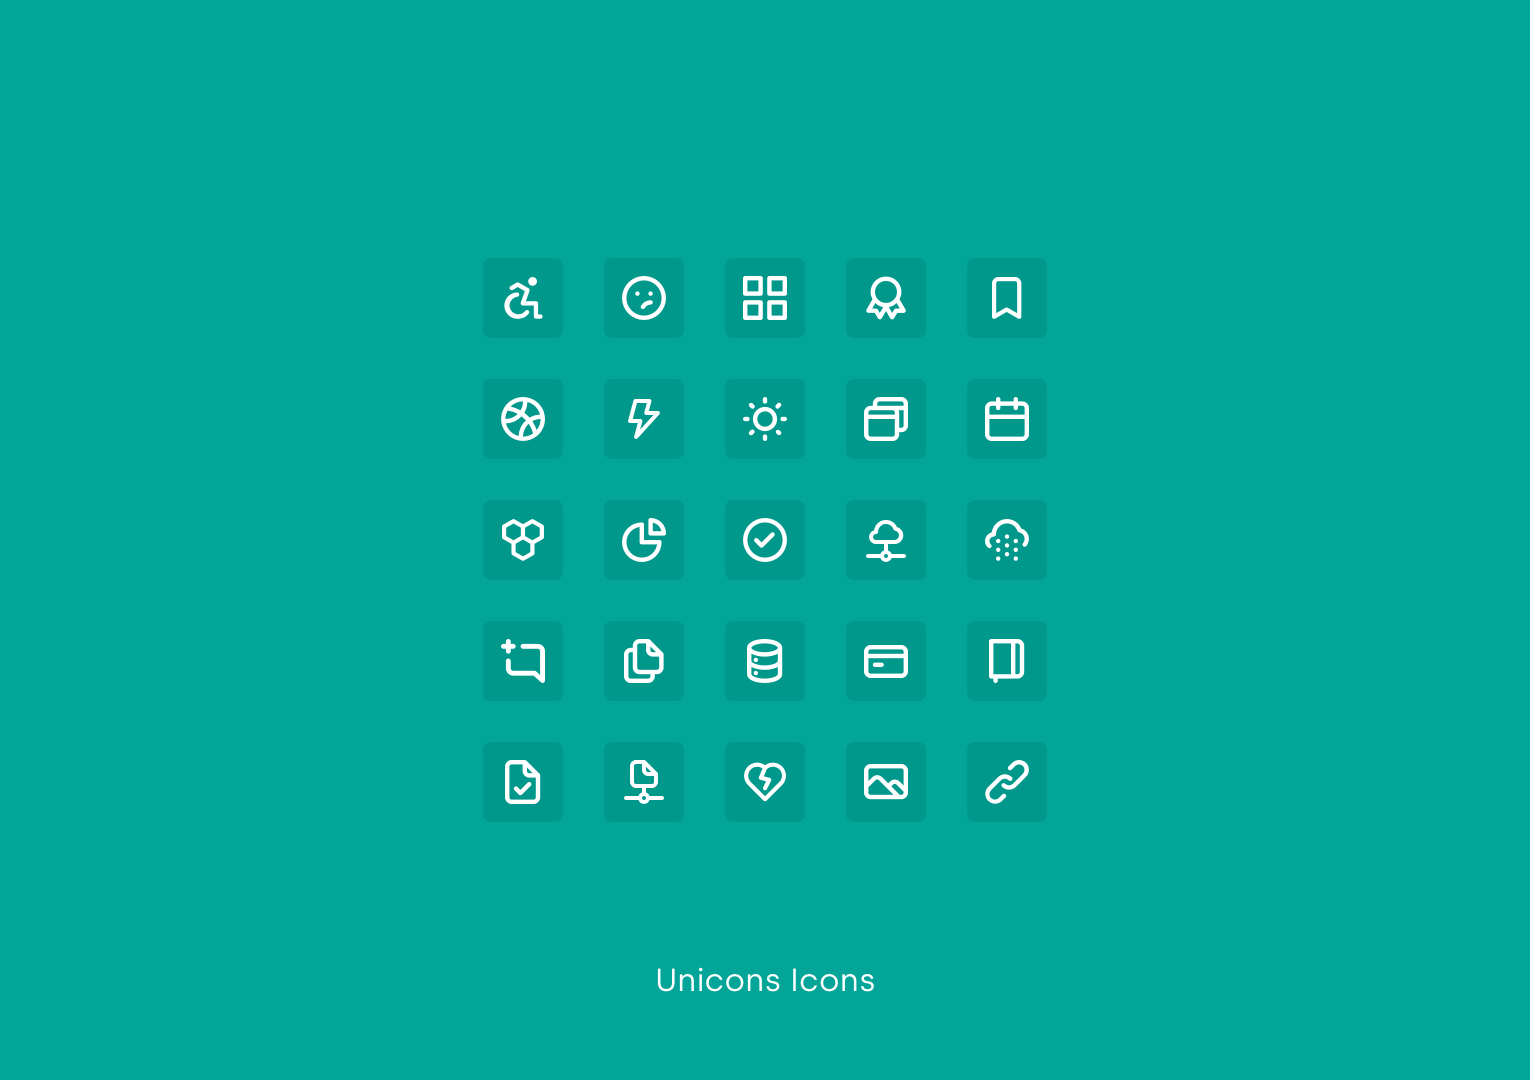 Unicons Icons by Iconscout